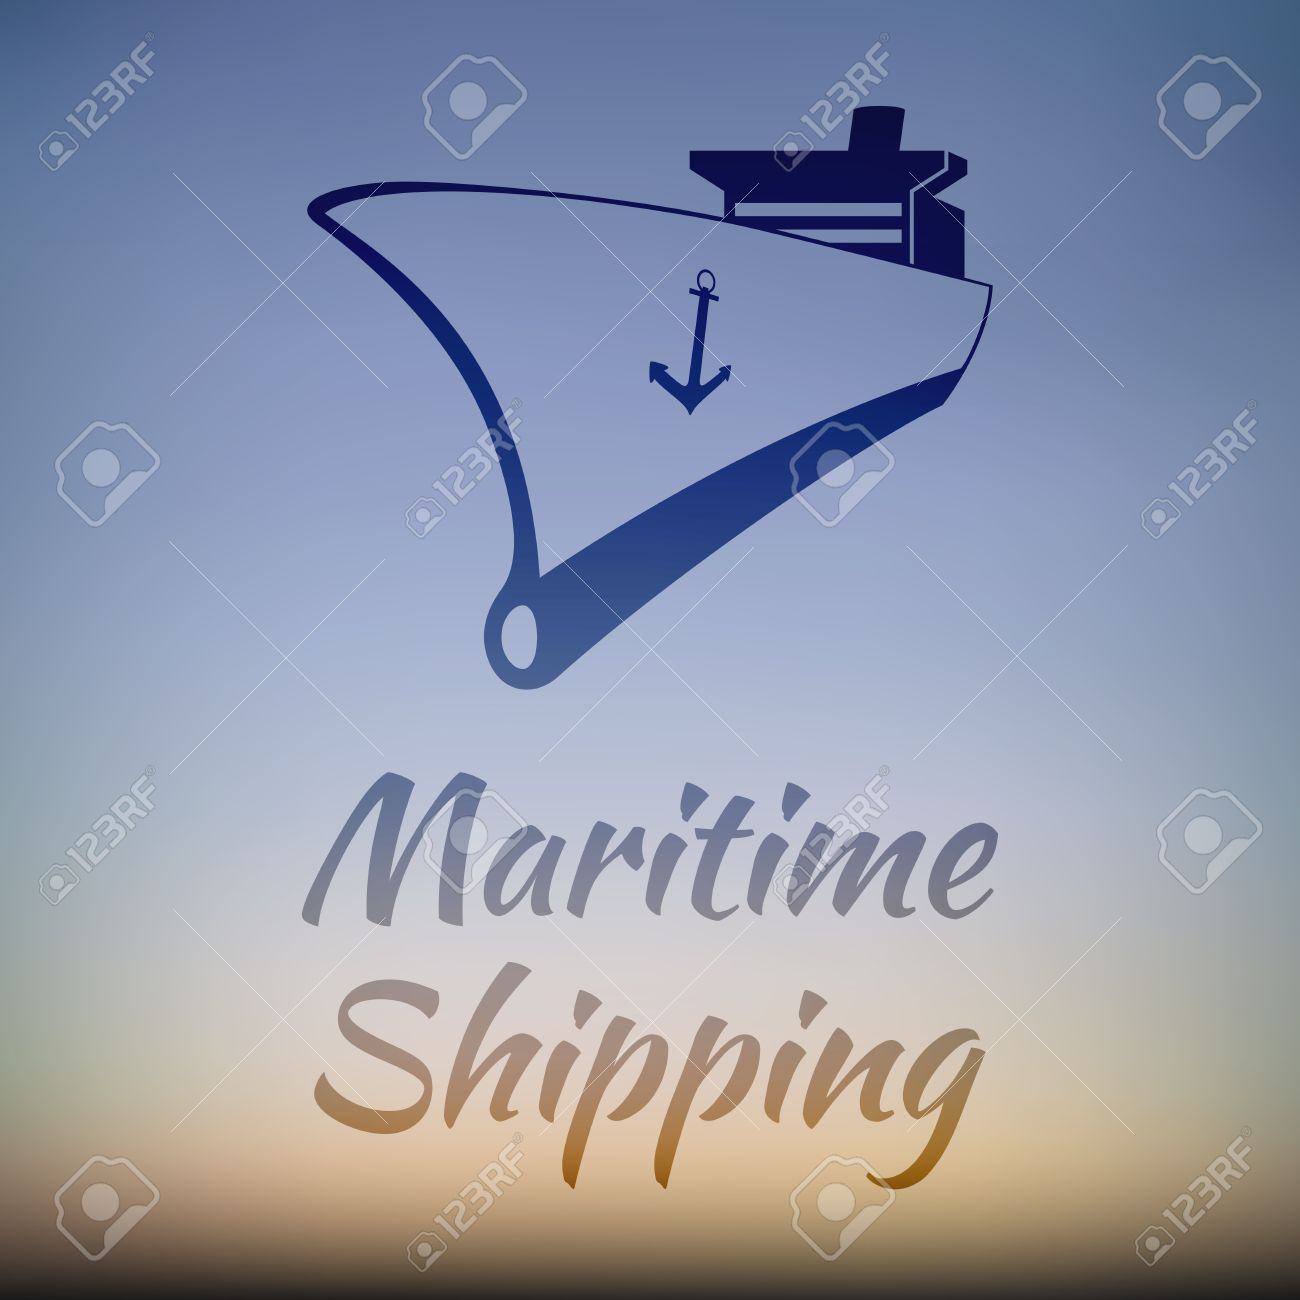 Shipping and Maritime Company Recruitment